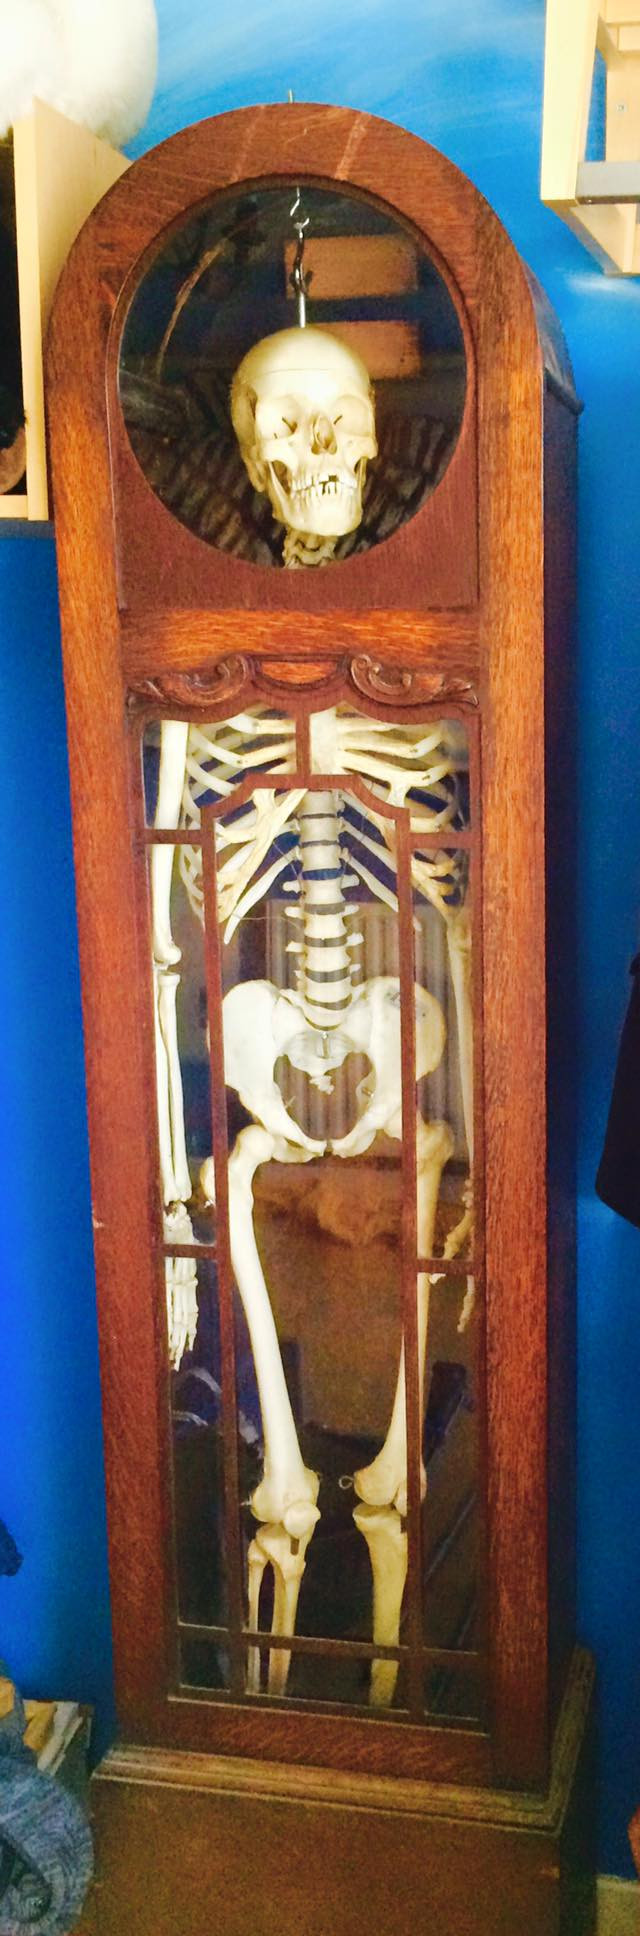 Medical skeleton hanging in a clock case